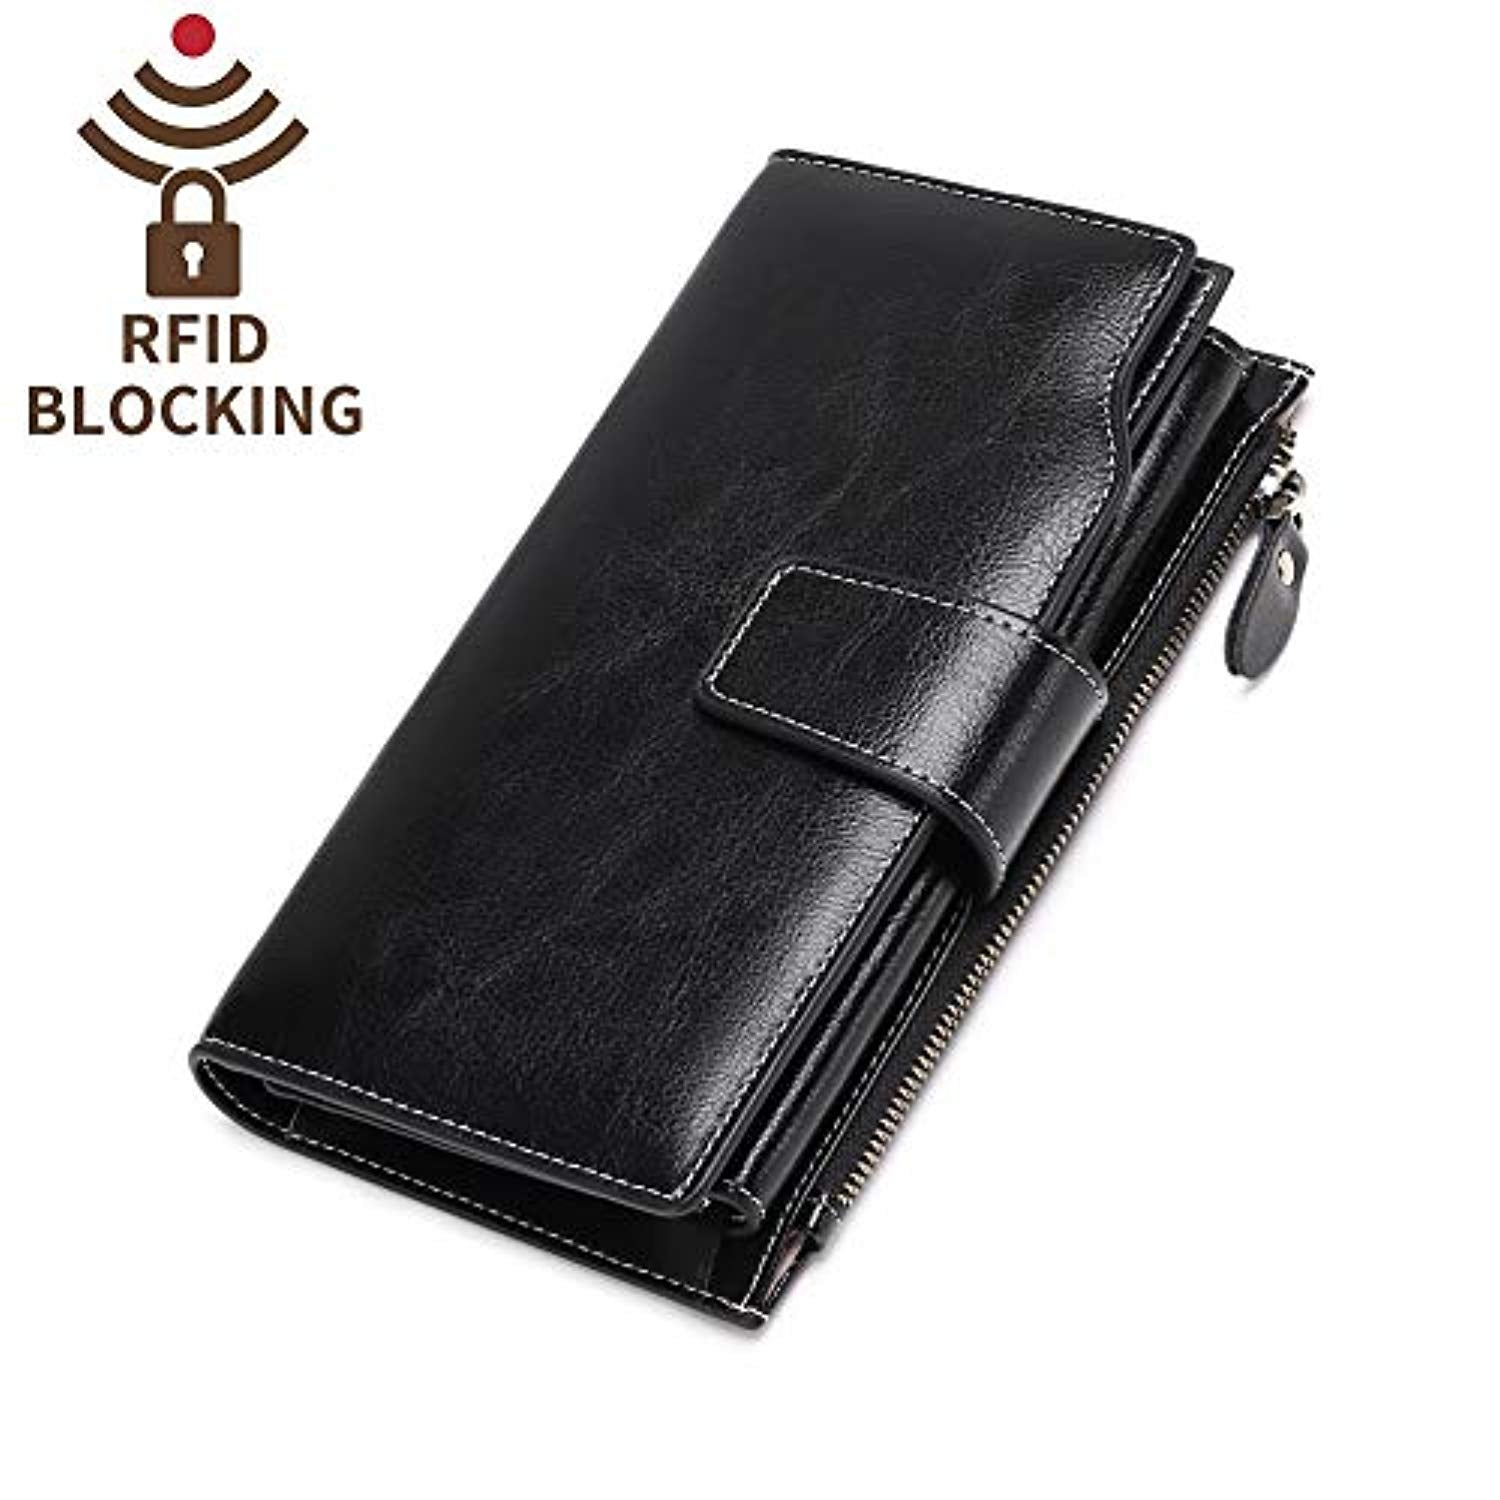 41823eb293 Elegant 24 20 cc Slots Womens RFID Wallets Large Capacity Leather Long  Trifold Clutch Purse